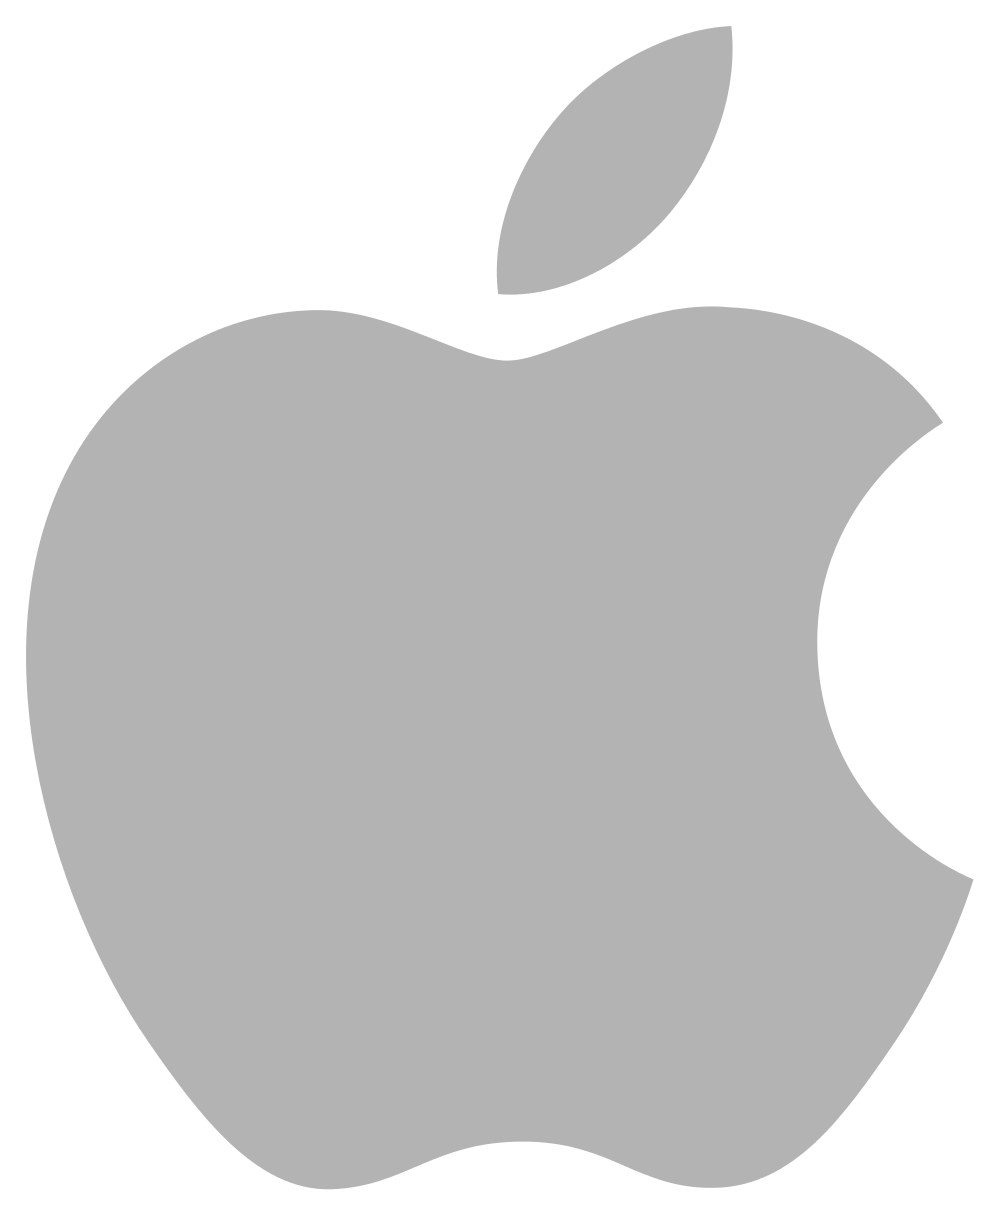 apple_logo_PNG19670